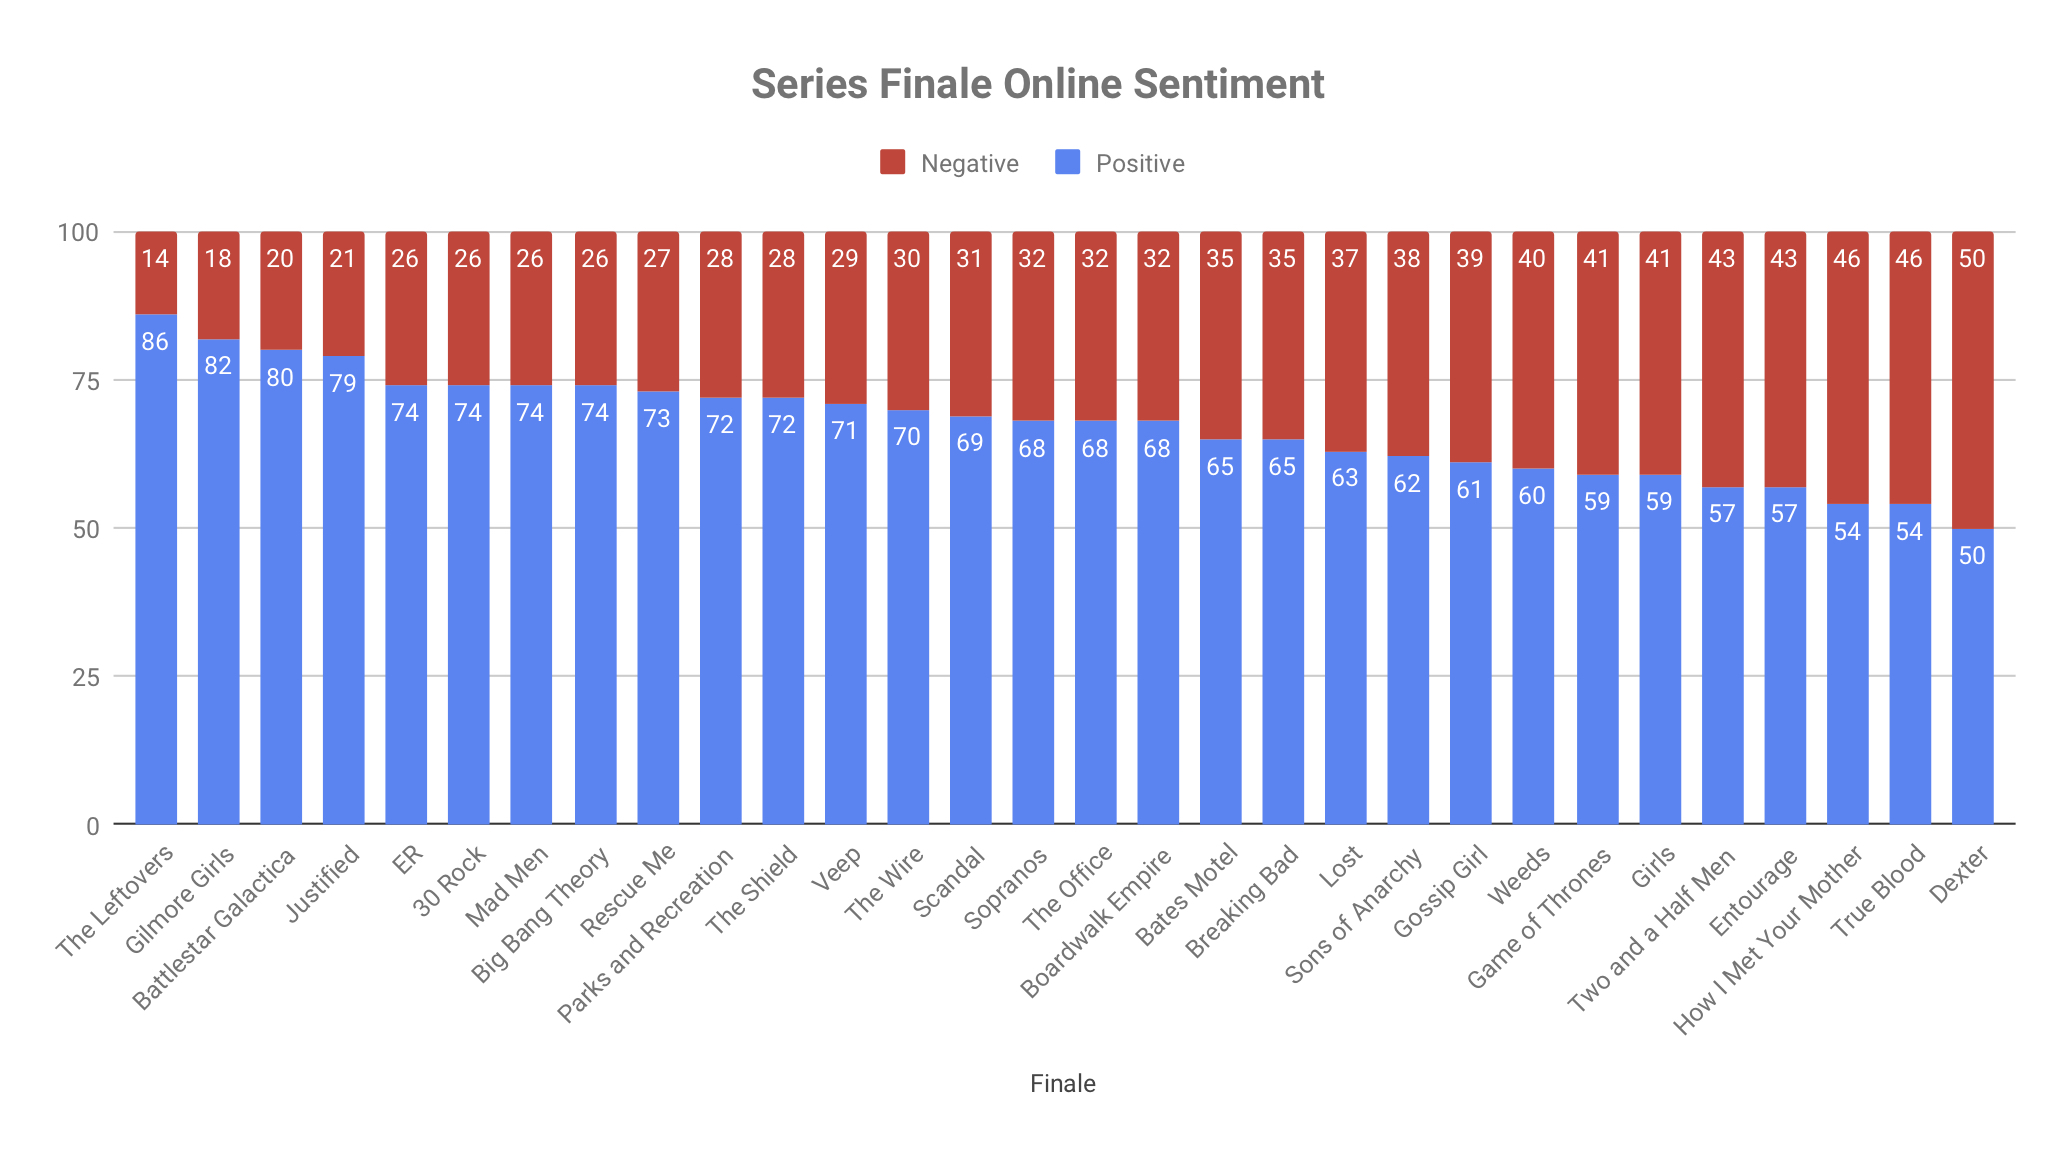 Series Finale Online Sentiment (1).jpg